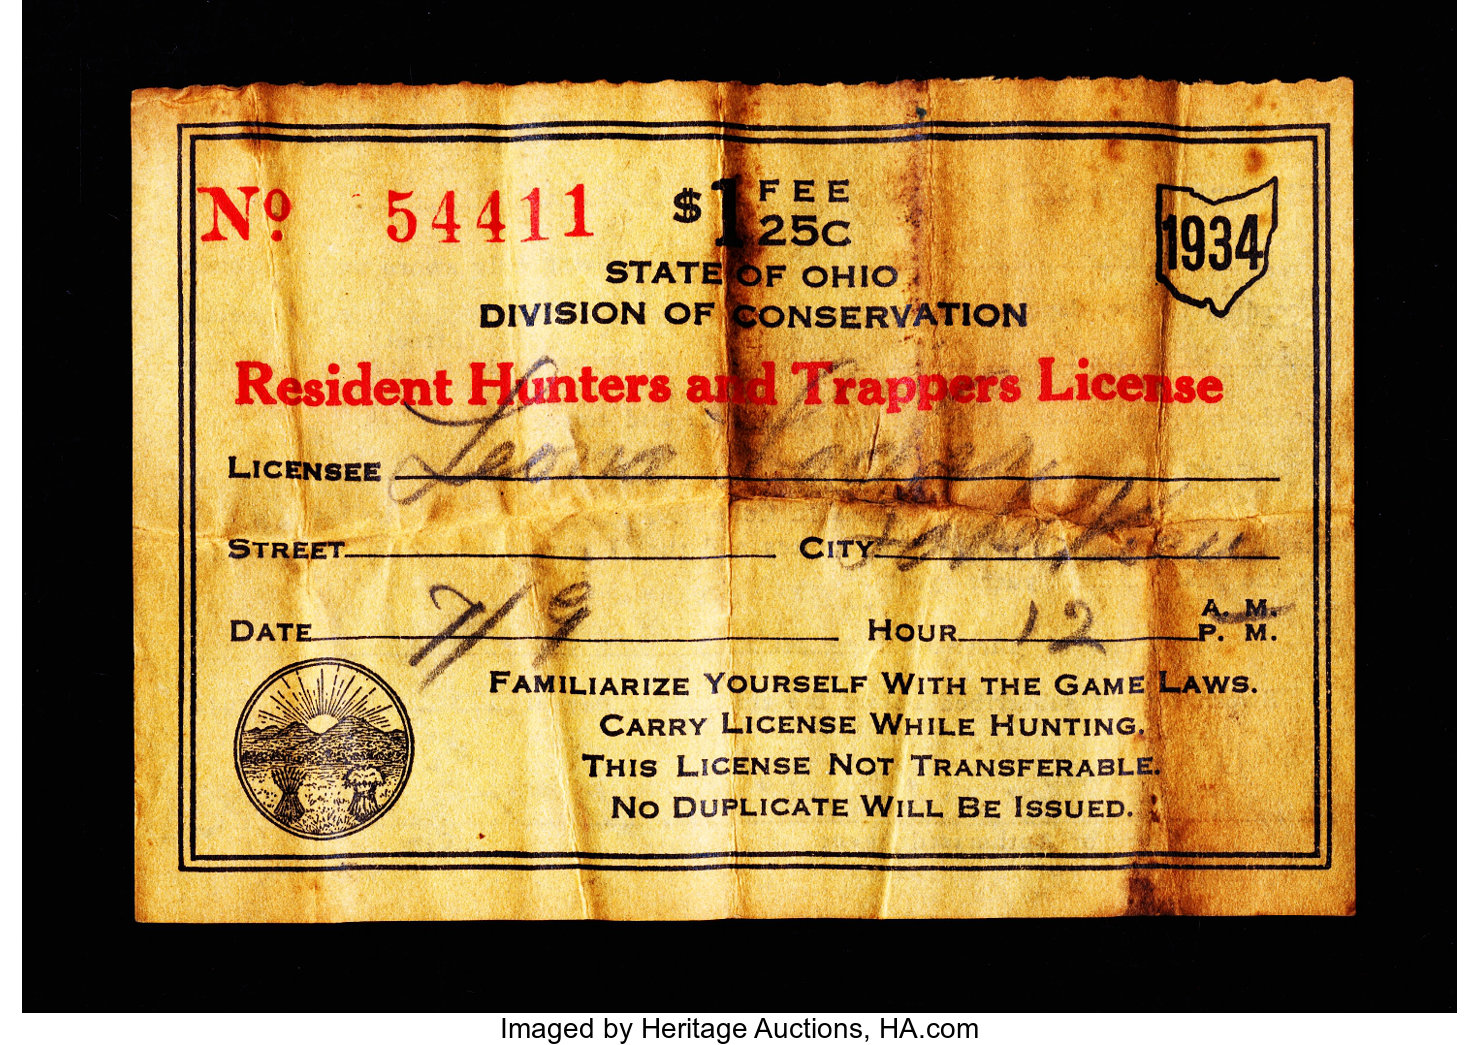 Ohio 1934 Residence Hunters and Trappers License       | Lot